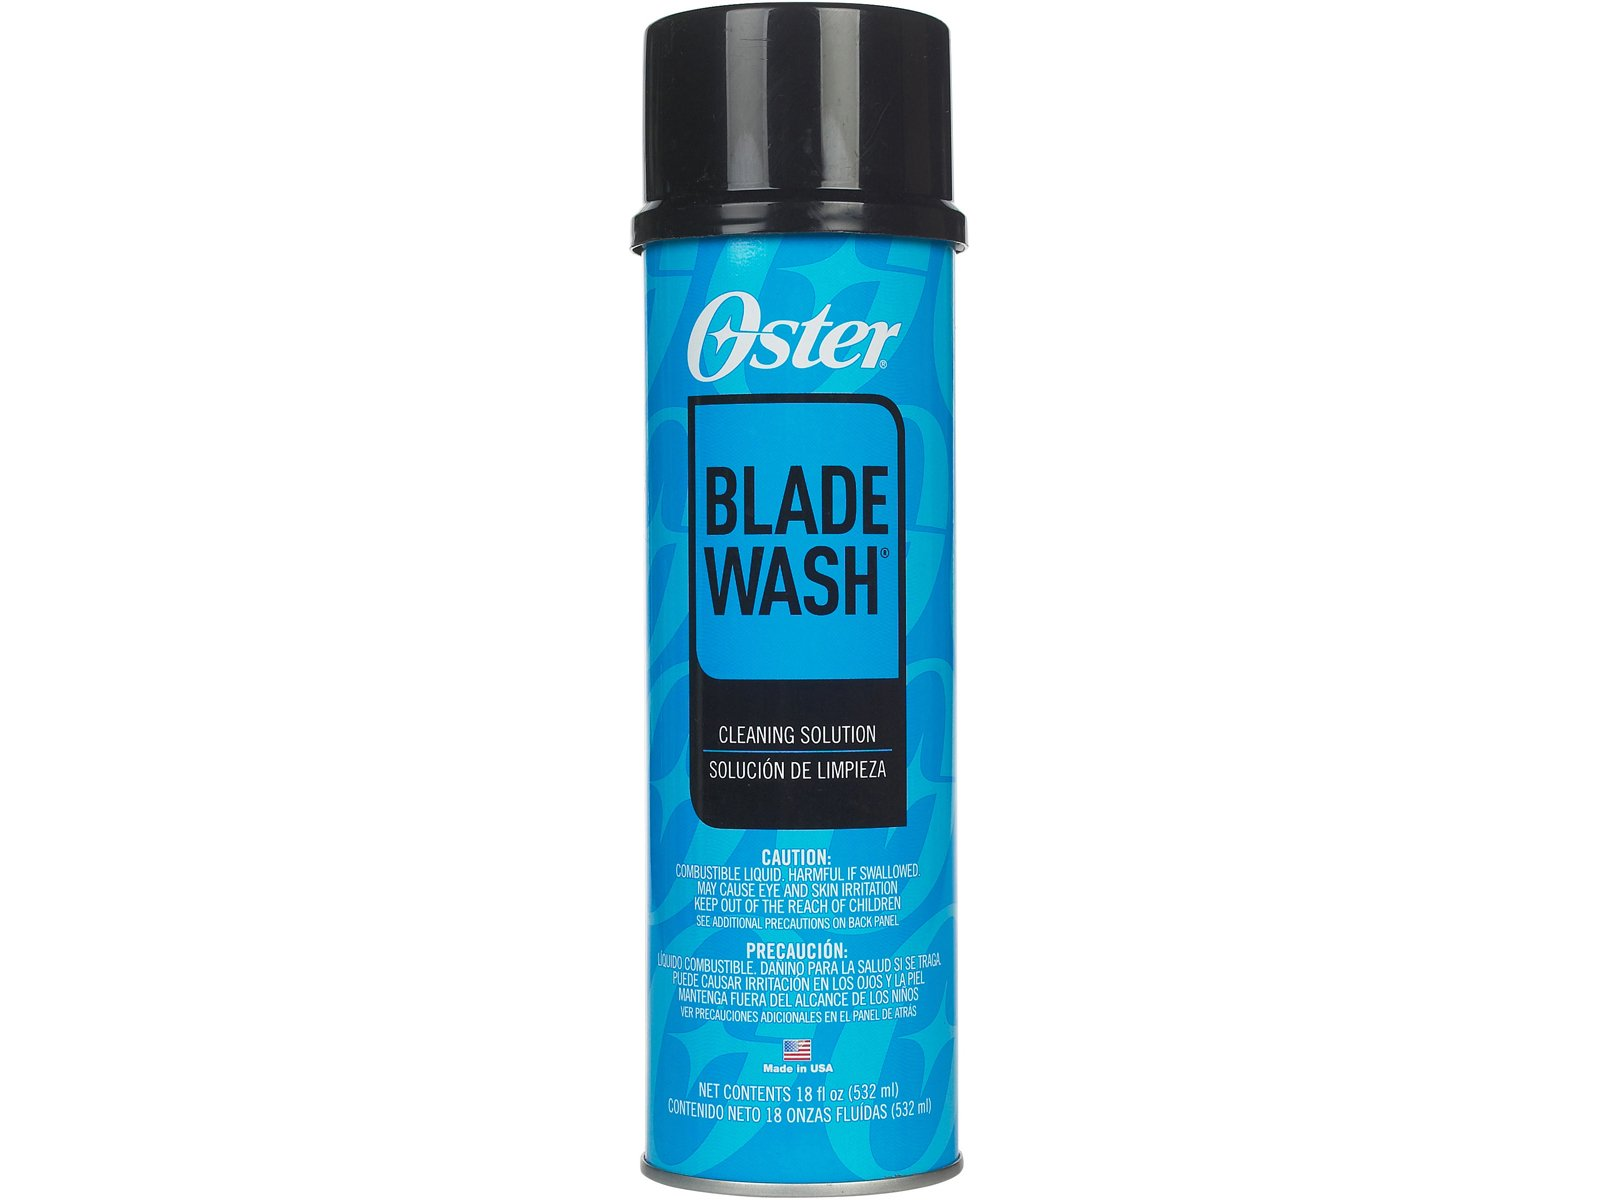 Oster Blade Wash, 18-ounces